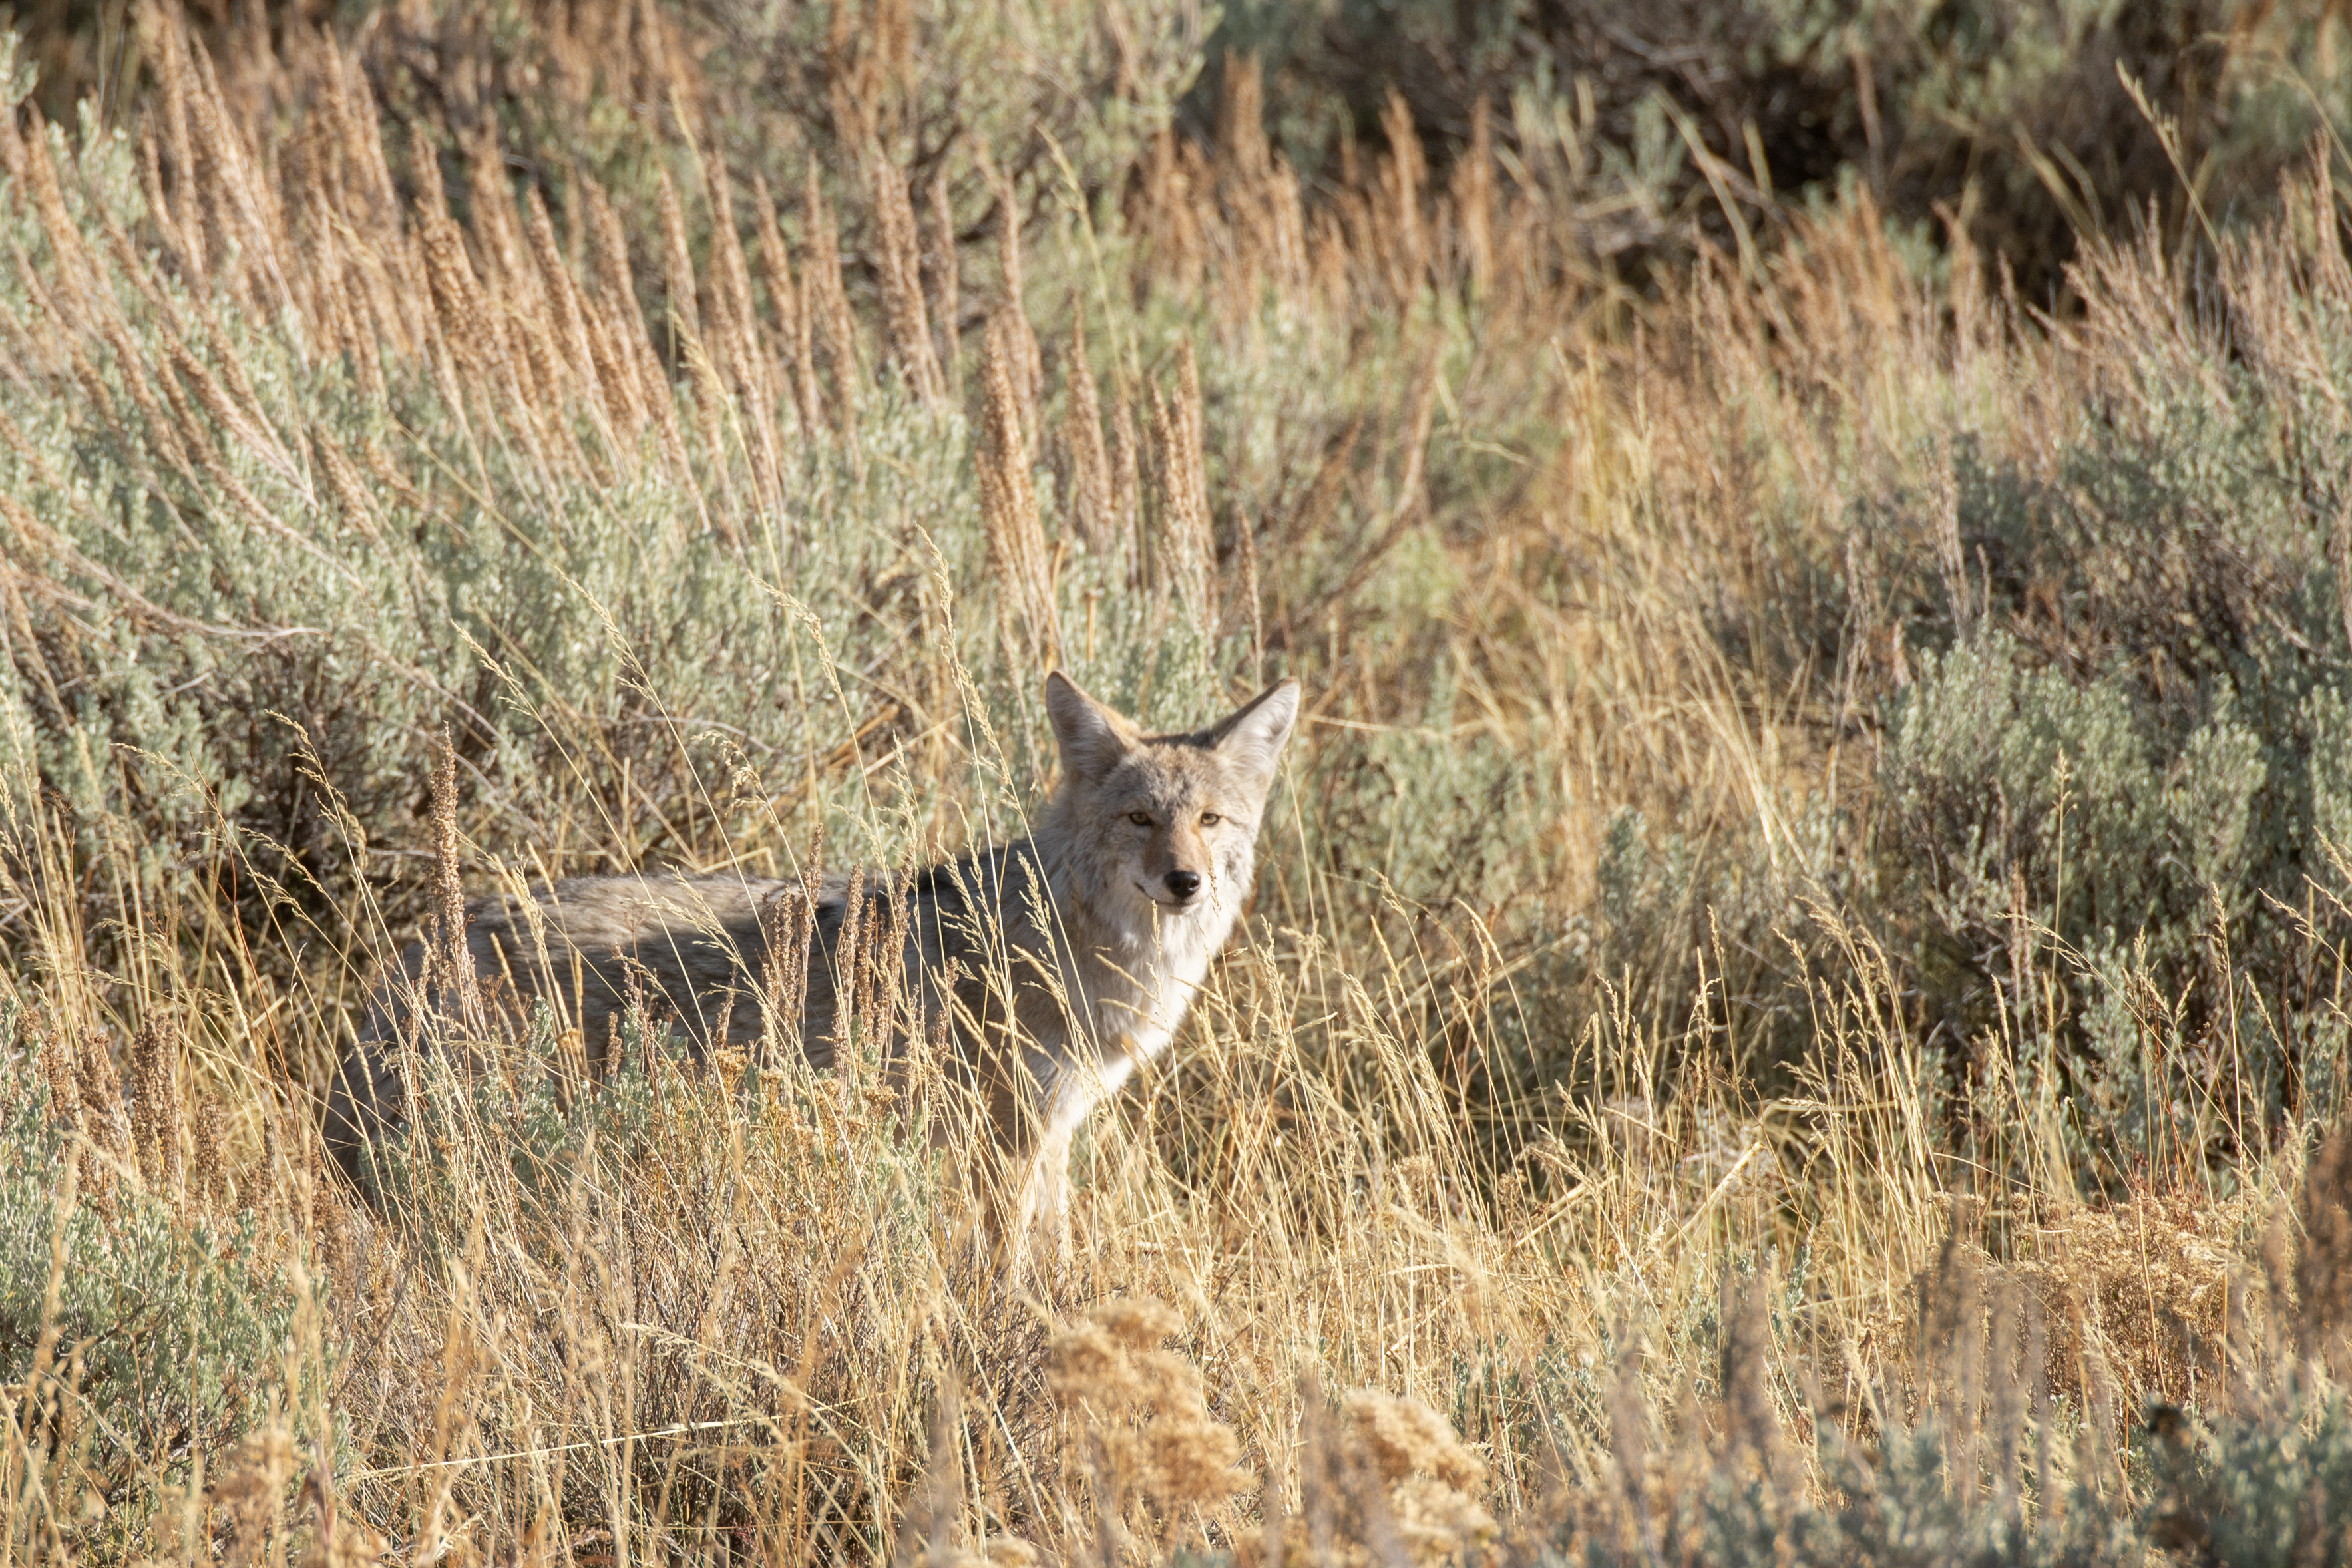 60092 download wallpaper Animals, Coyote, Animal, Grey, Grass, Wildlife screensavers and pictures for free